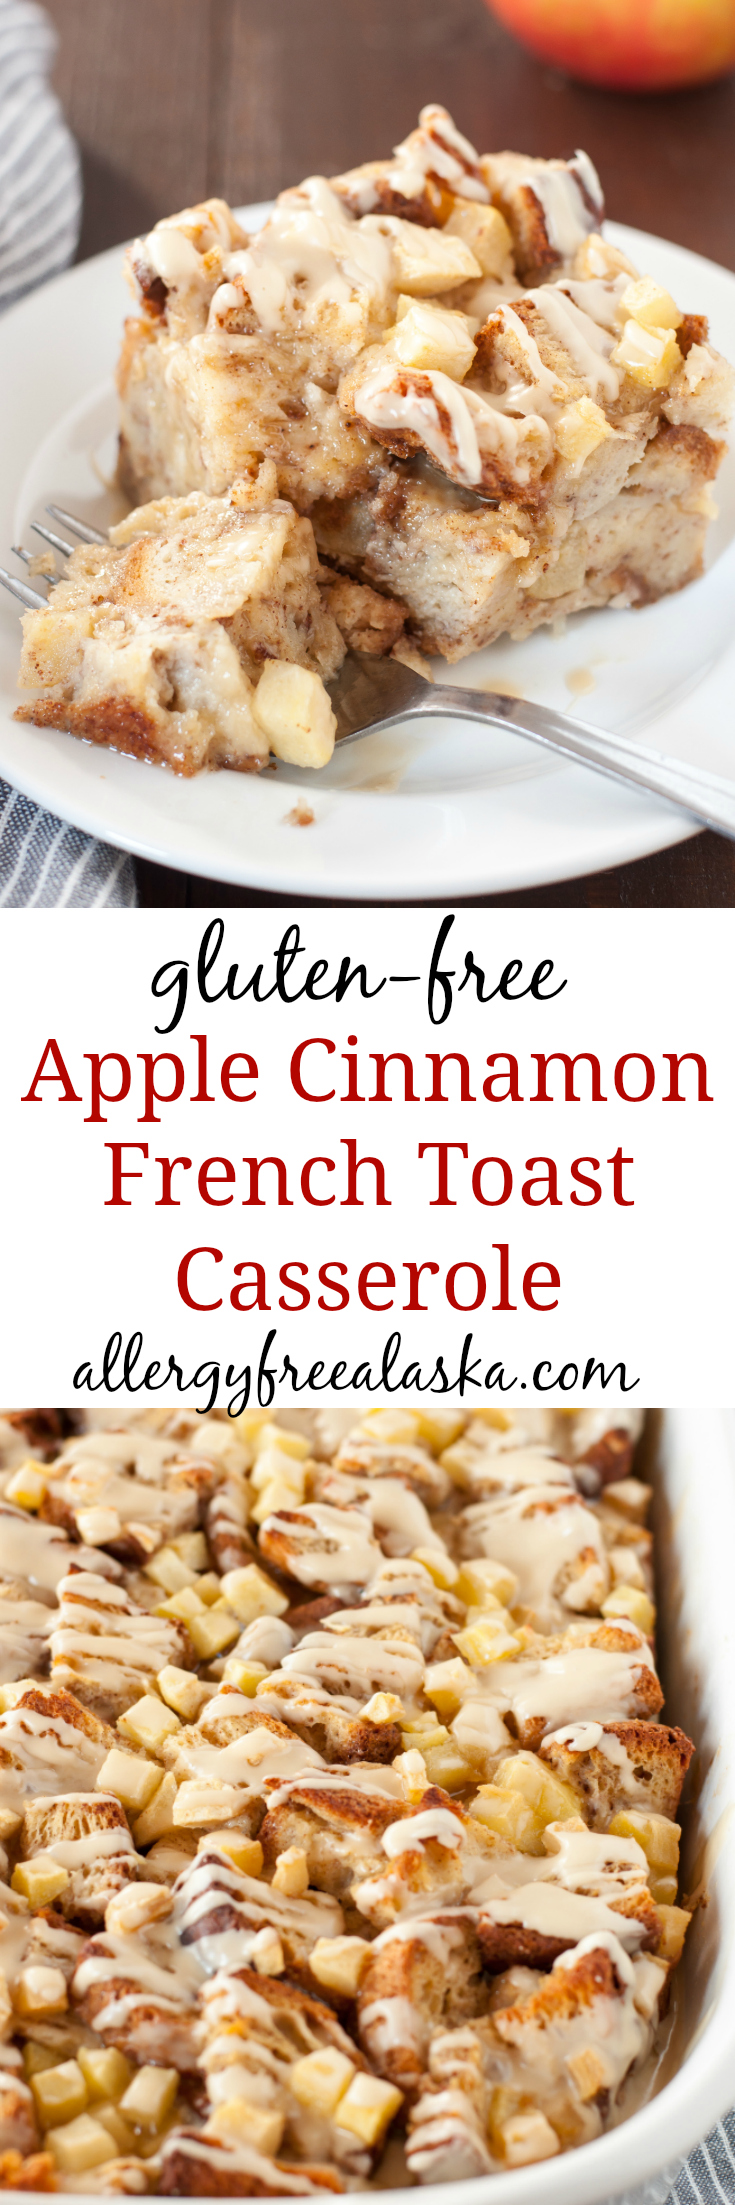 Gluten Free Apple Cinnamon French Toast Casserole Recipe